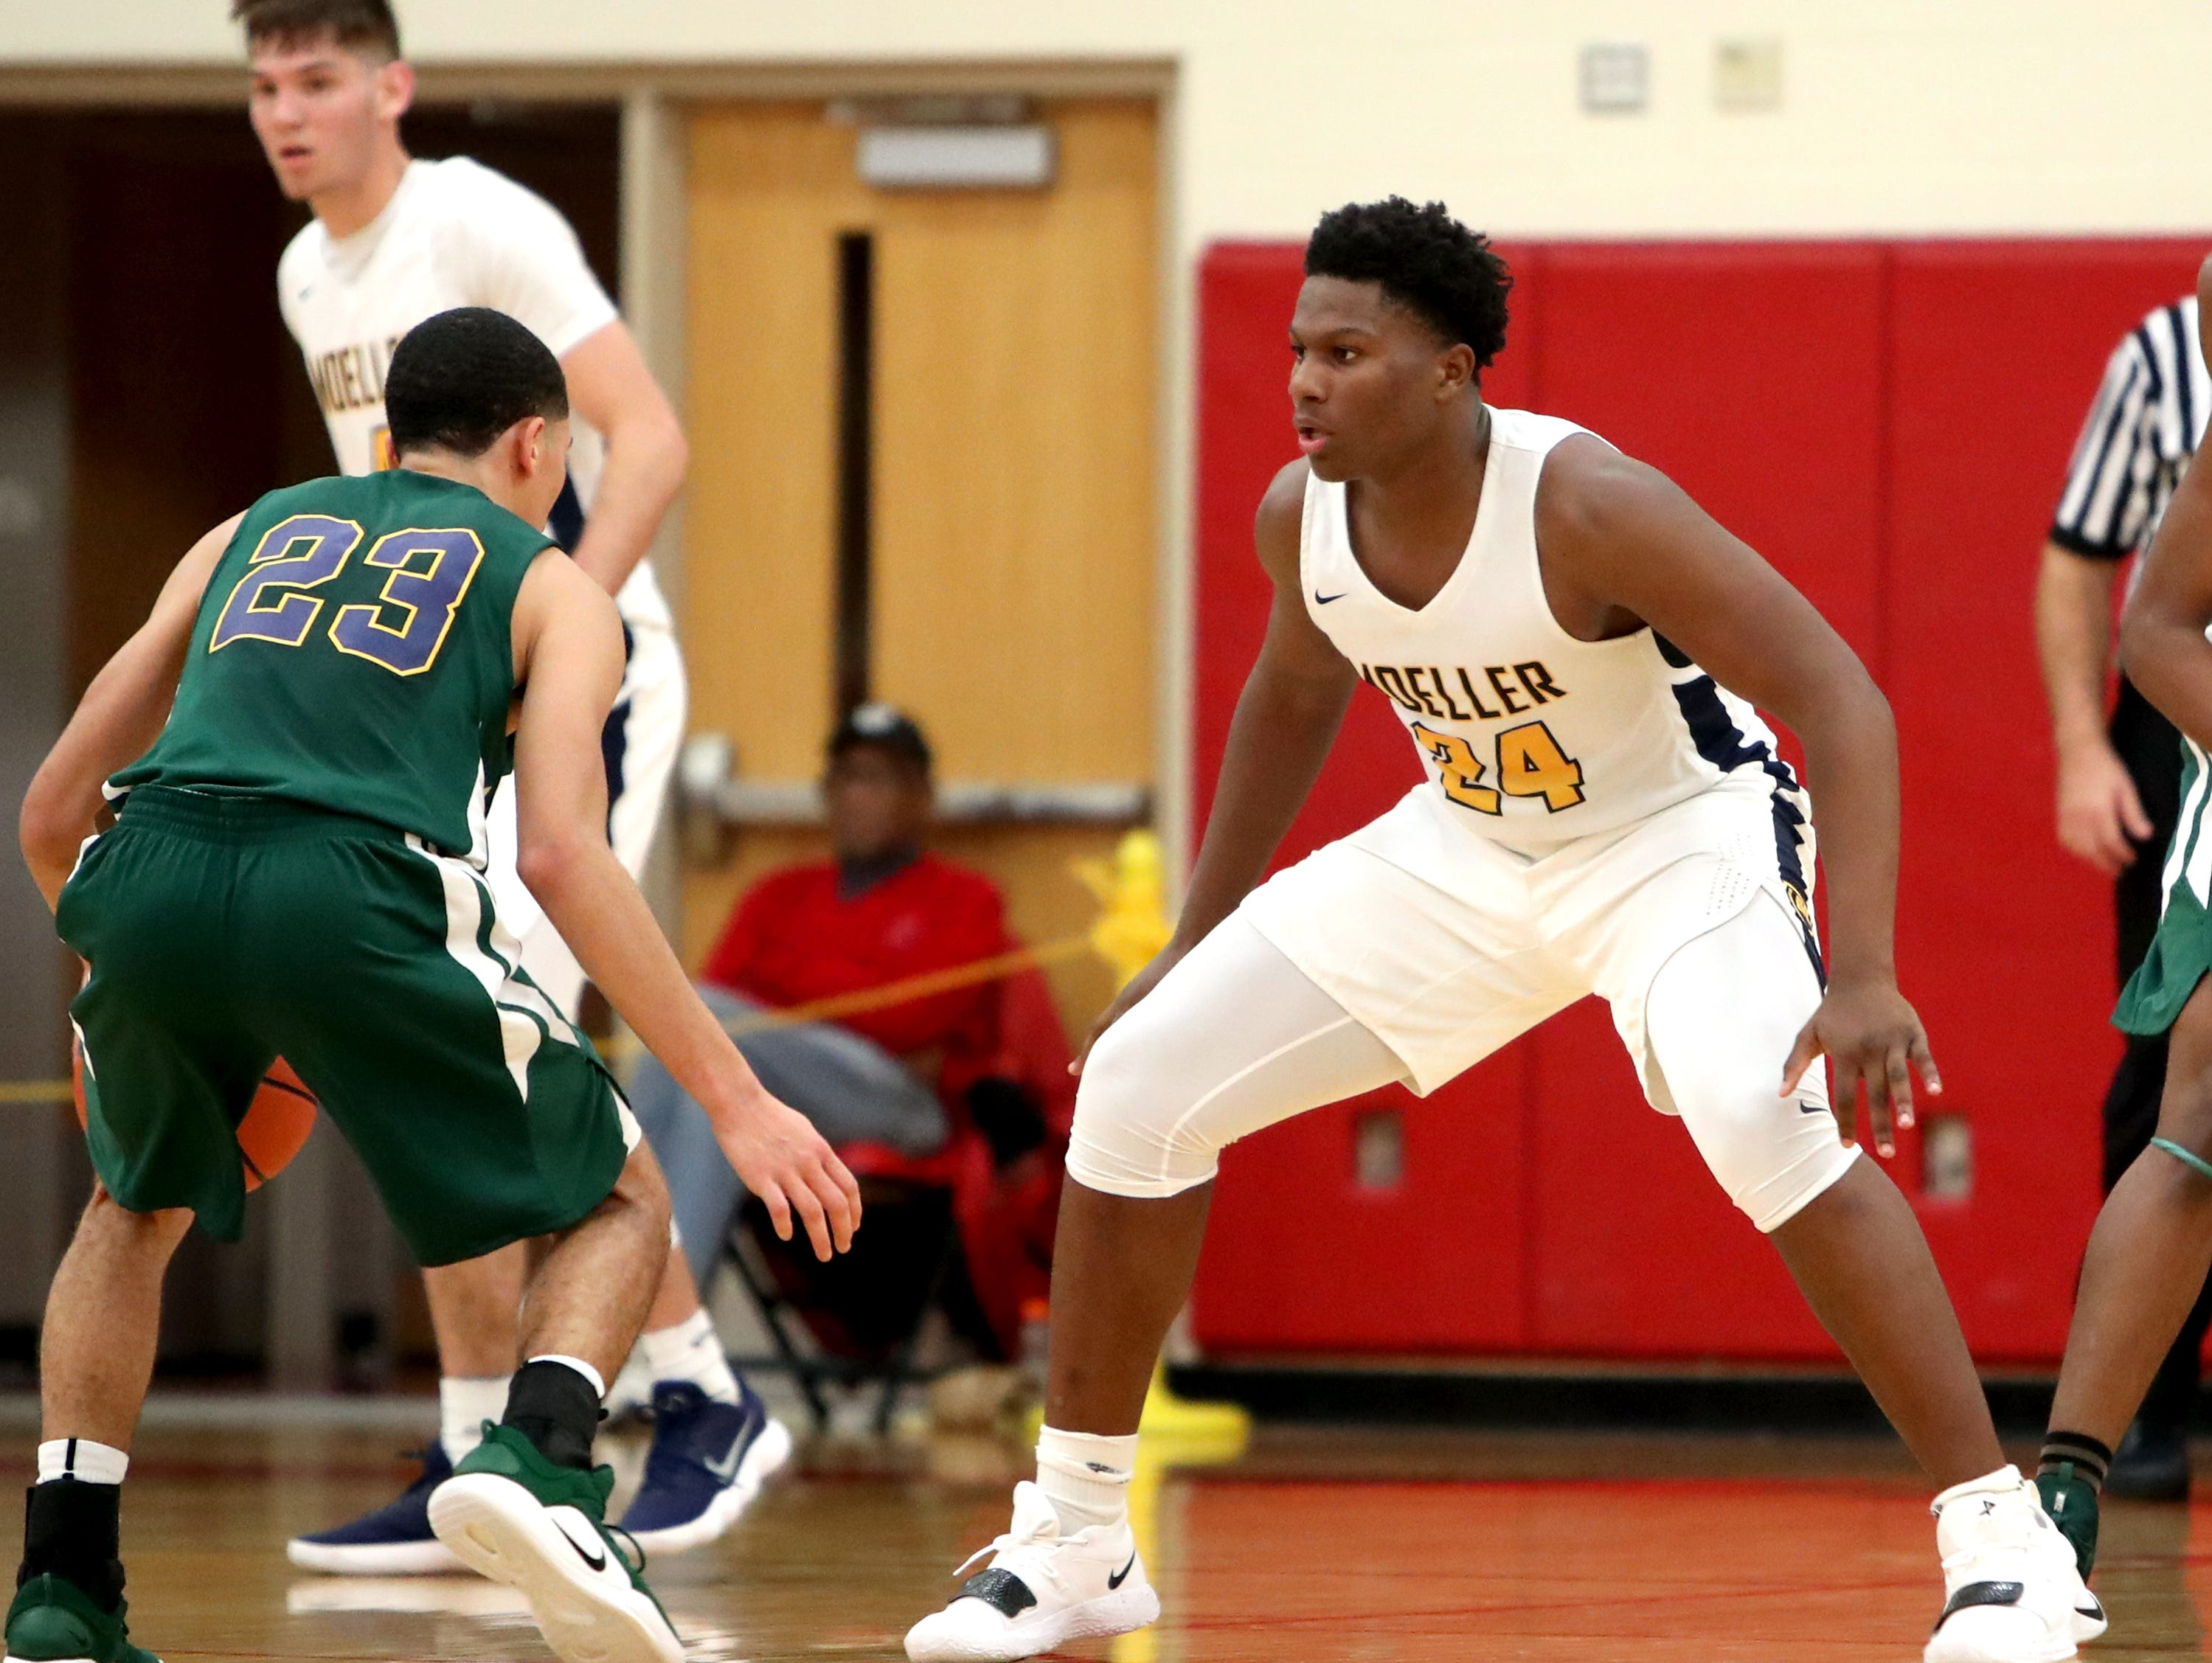 Moeller forward Alex Williams guards Bryan Station's Myles Morones at the Ohio Valley Hoops Classic at Hillsboro High School. Moeller defeated Bryan Station 85-42.